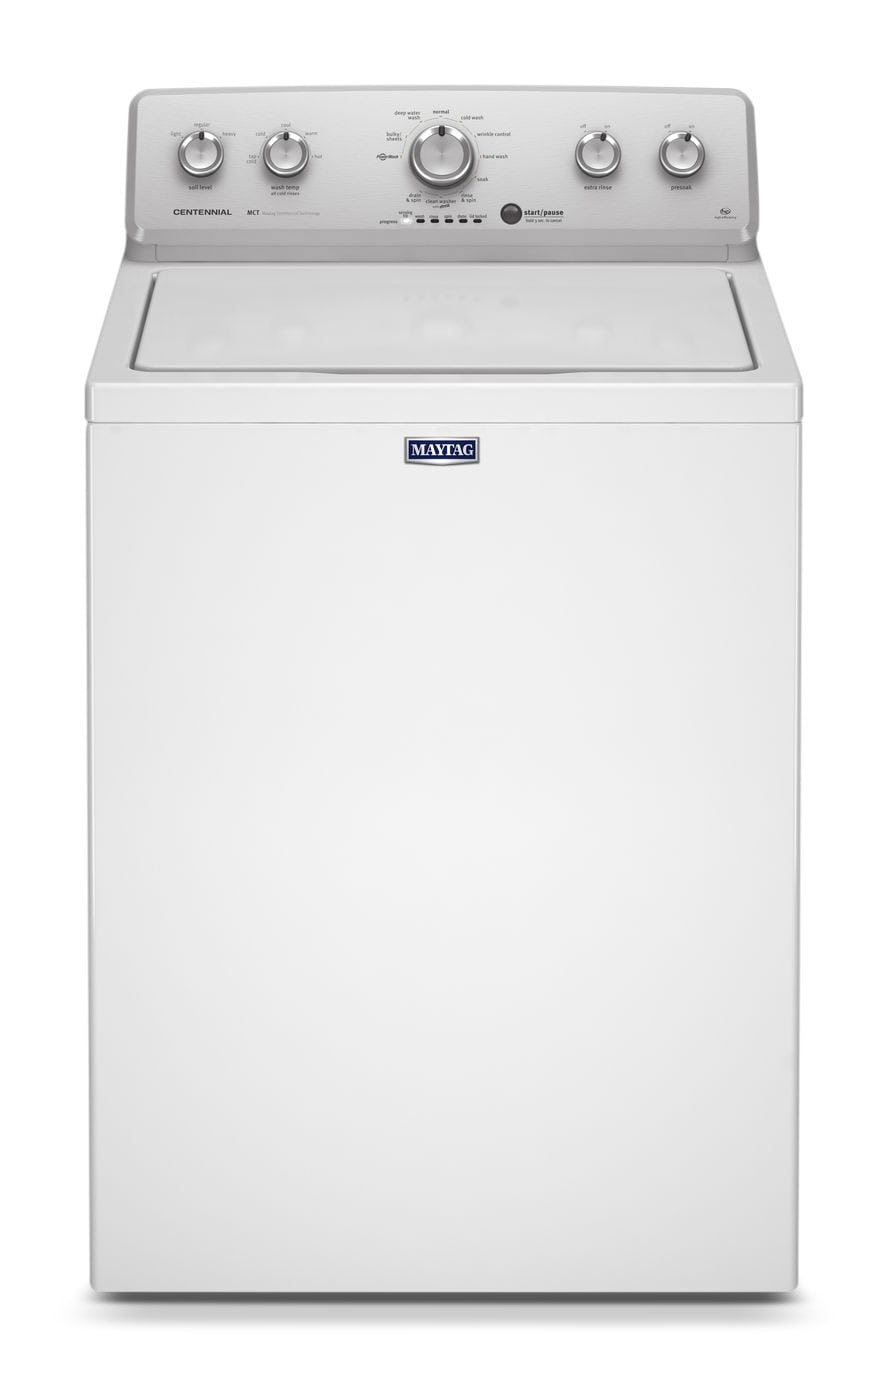 Maytag White Top-Load Washer (4.2 Cu. Ft.) - MVWC415EW